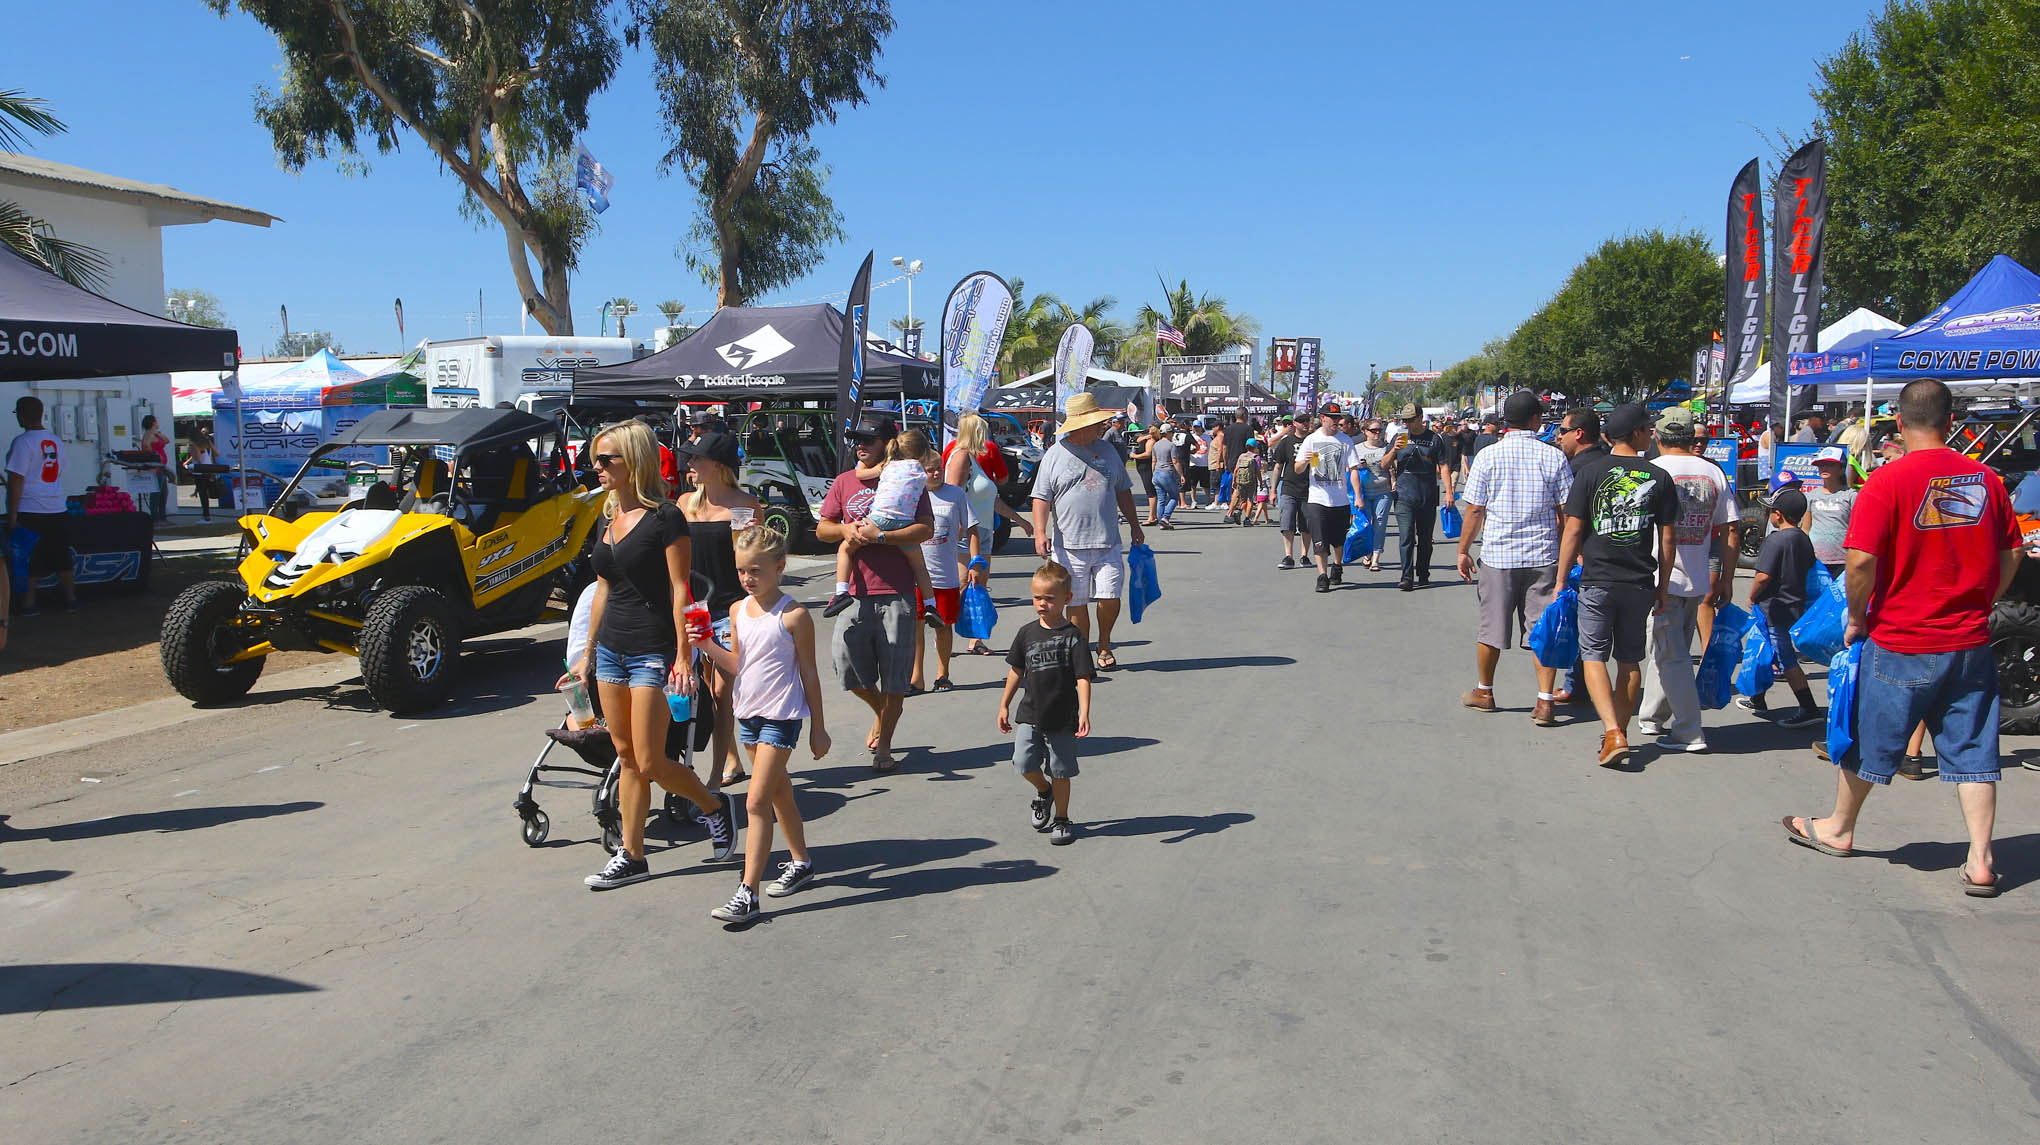 A beautiful weekend greeted the attendee's of the 18th Annual Sand Sport Super Show.